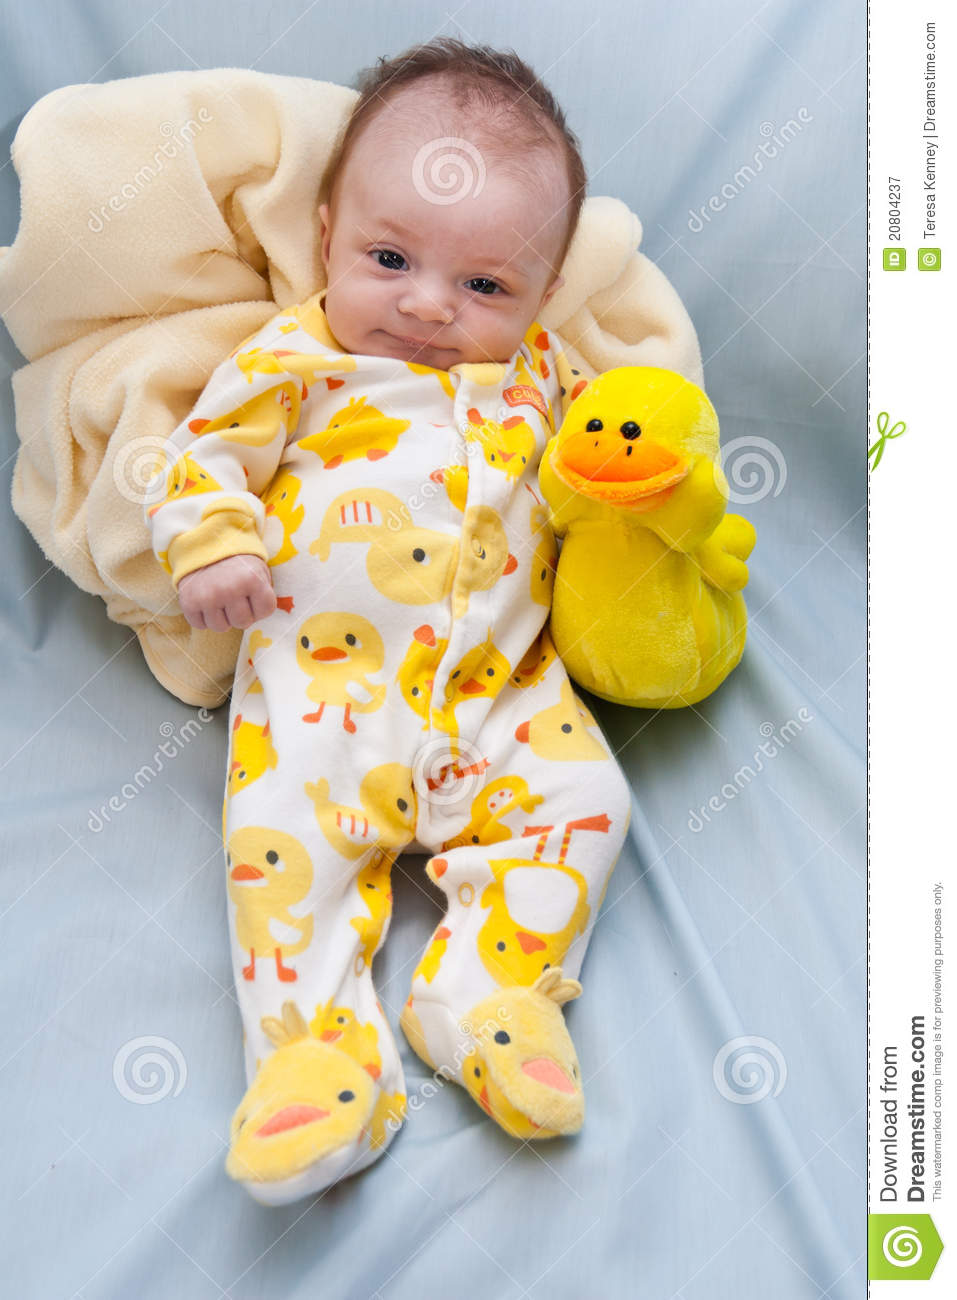 Newborn Ducky Theme Stock Image Image Of Ease Background